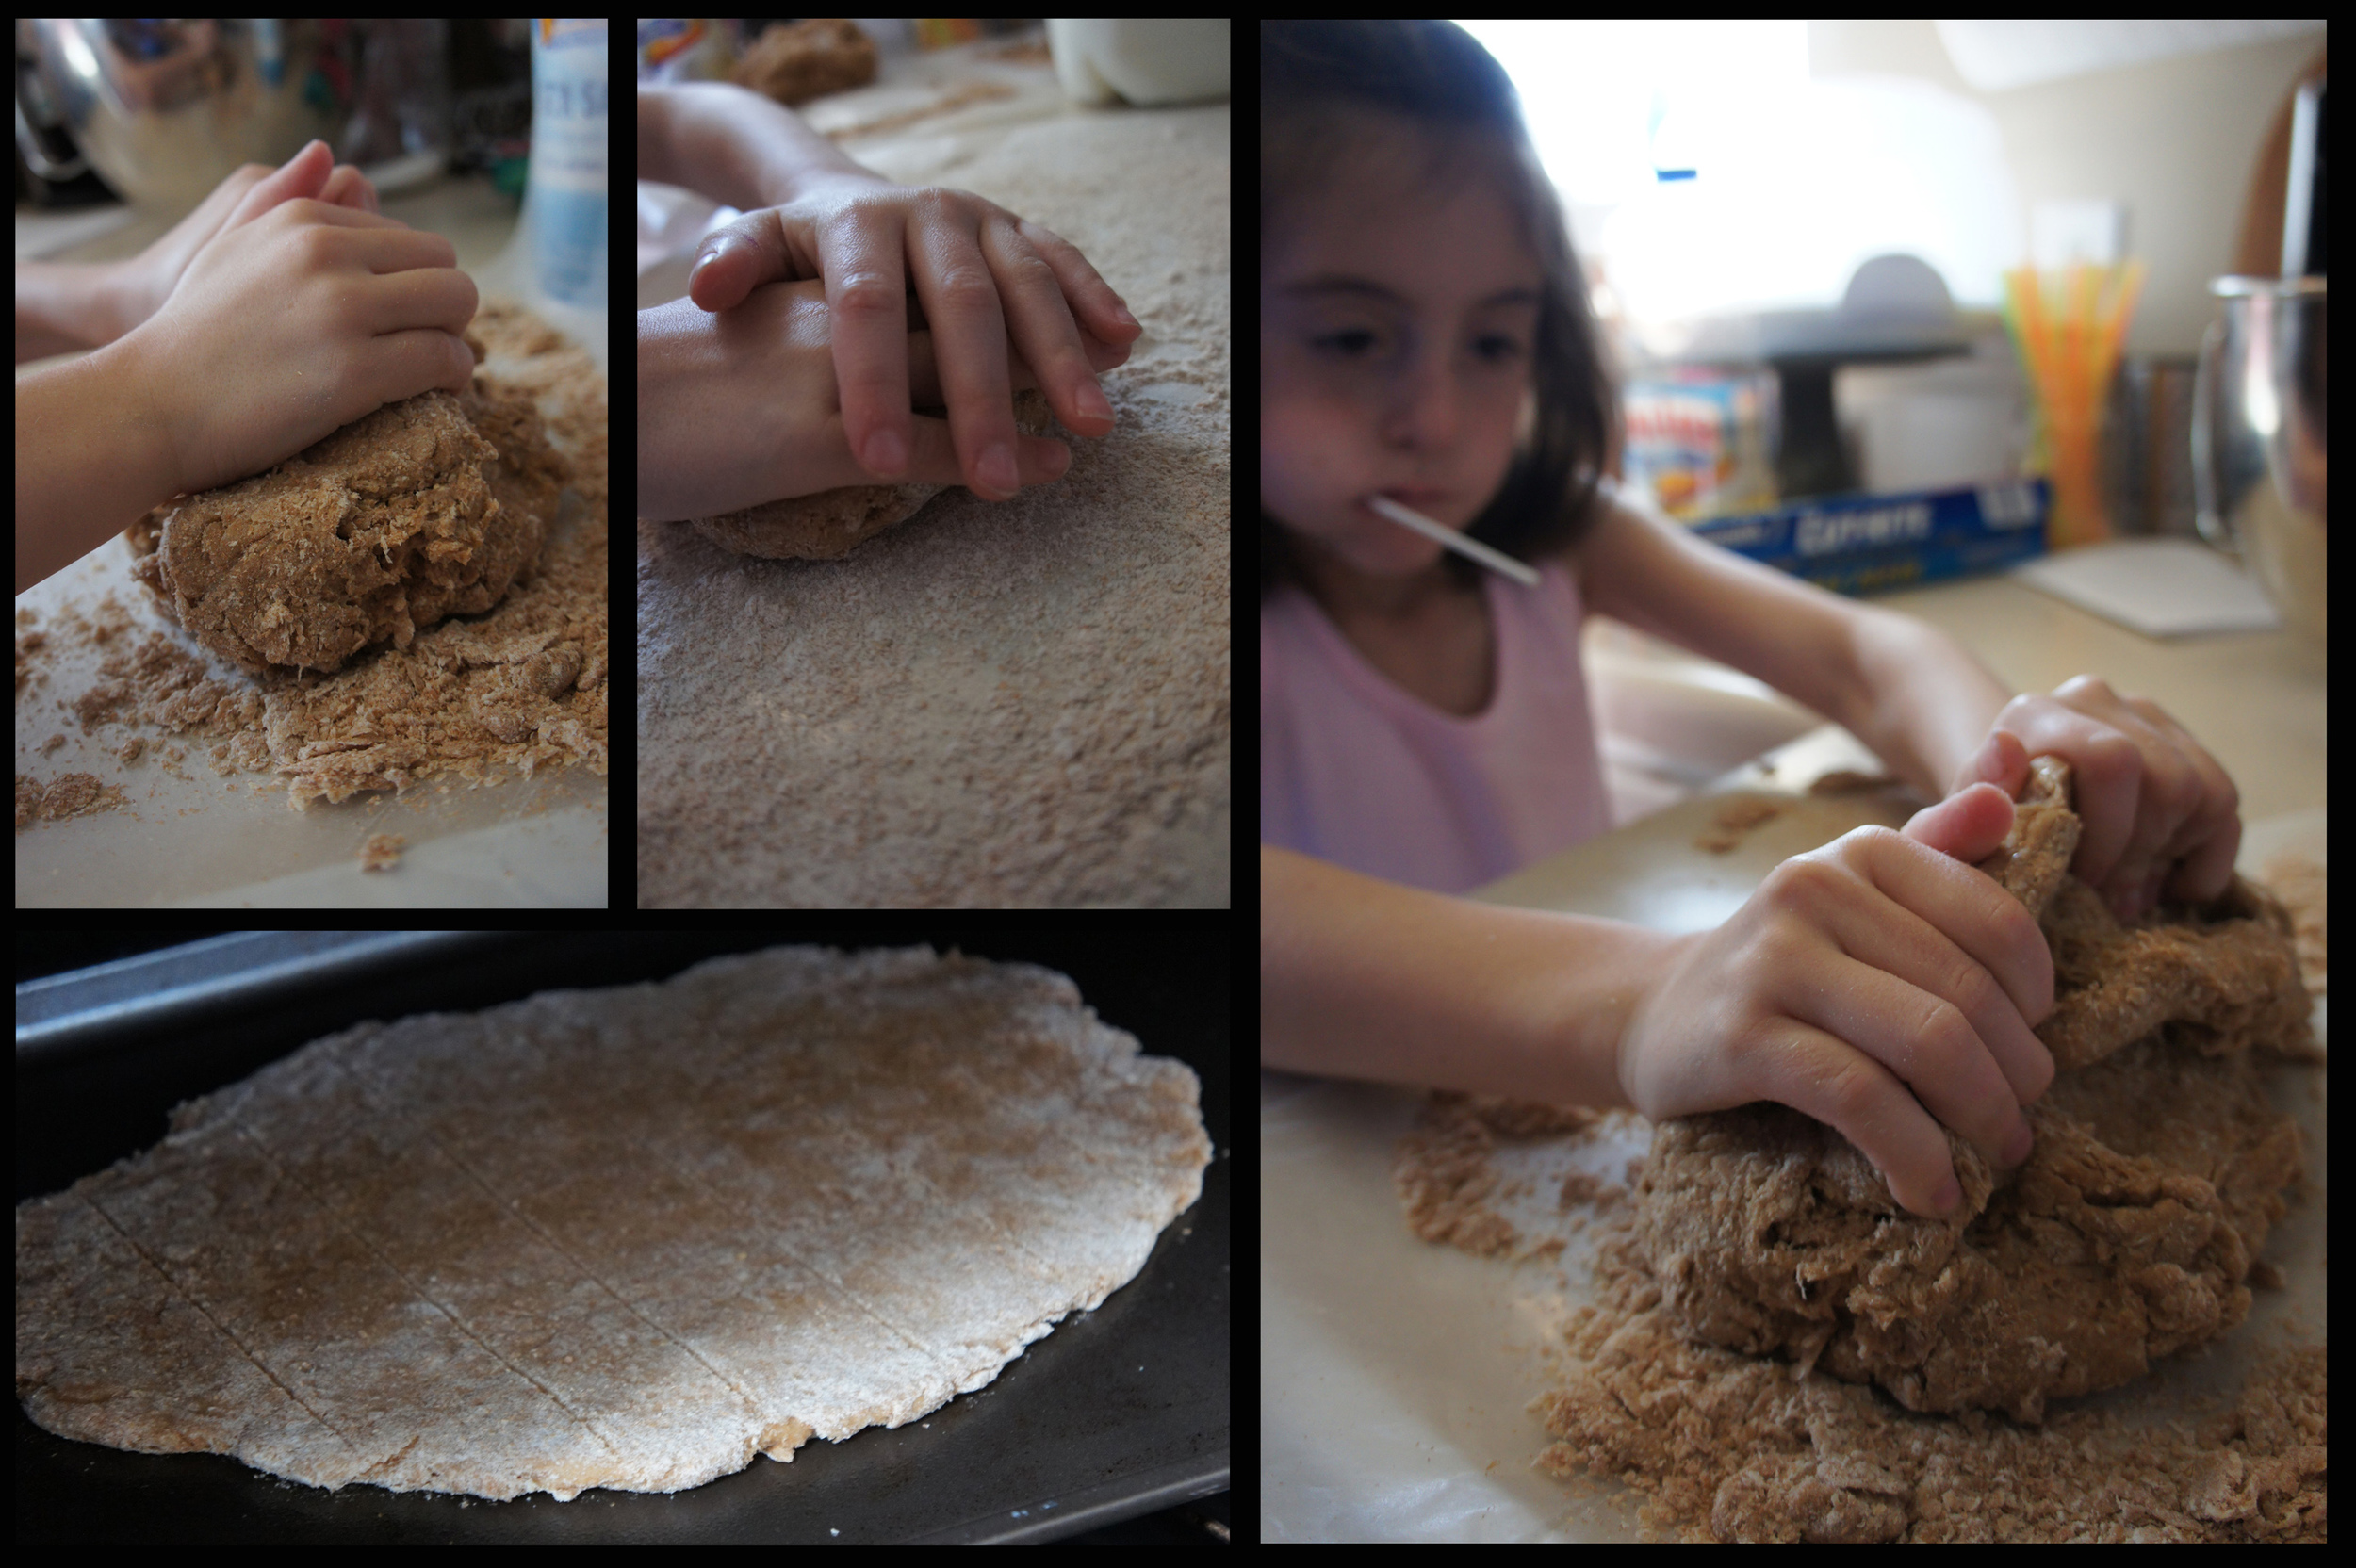 baking unleavened bread